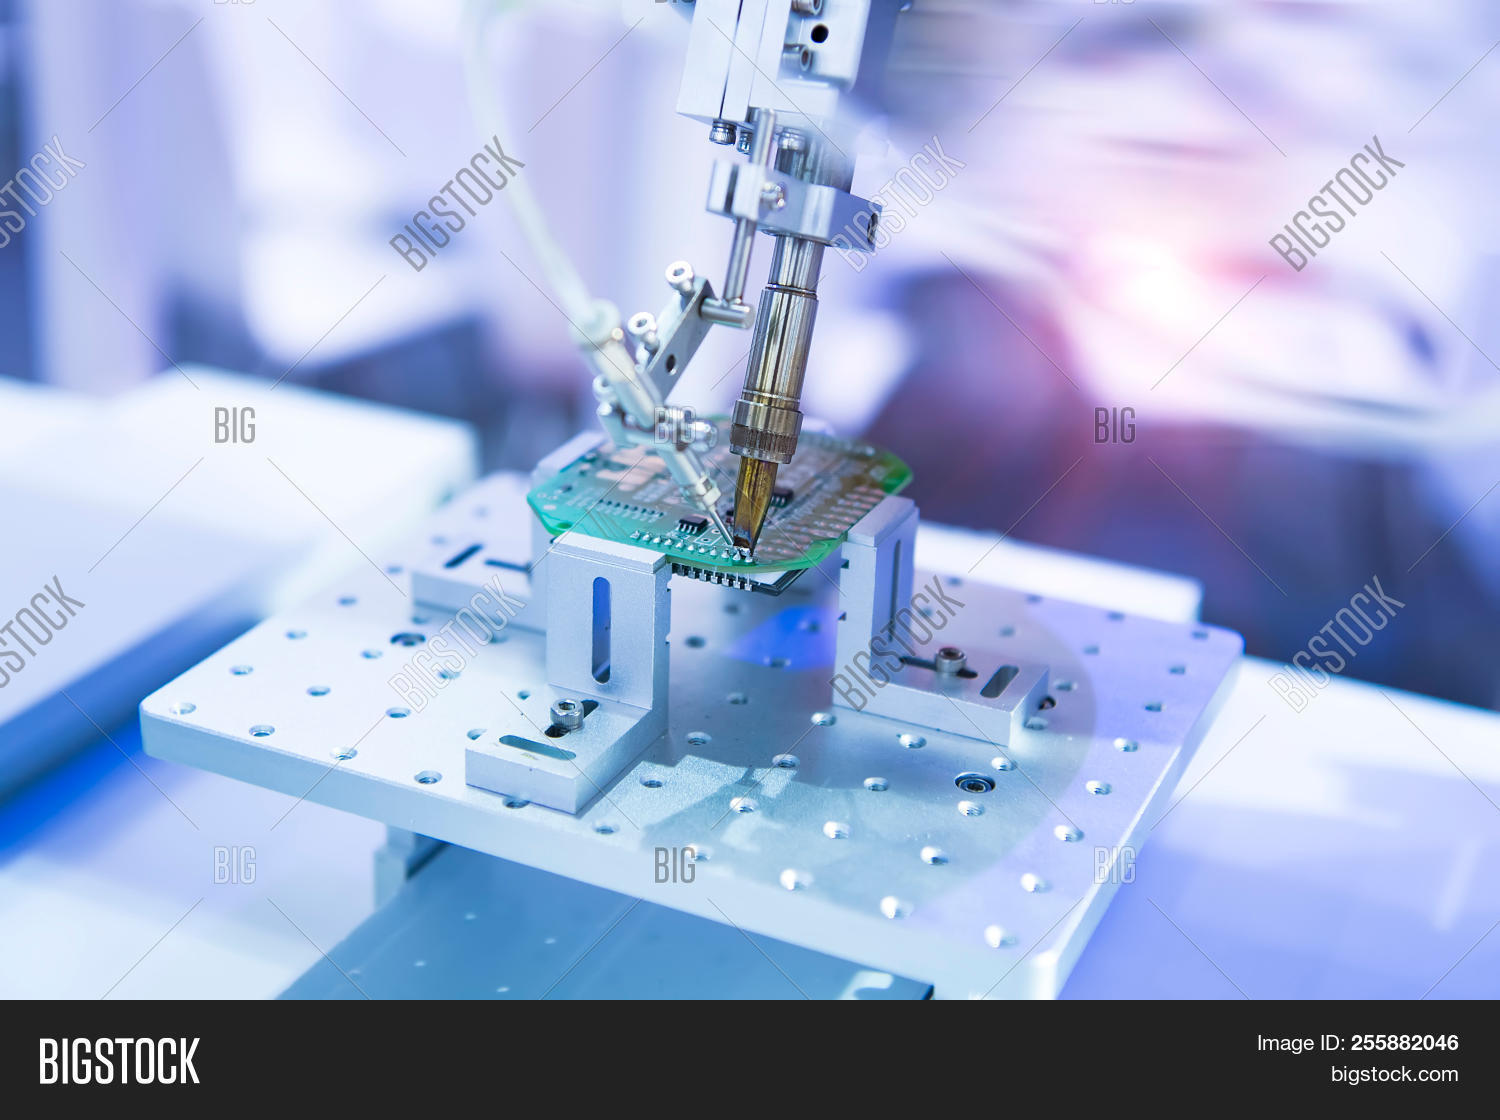 Soldering Iron Tips Image Photo Free Trial Bigstock Printedcircuitboardassemblylargejpg Of Robotic System For Automatic Point Printed And Assembly Electric Circuit